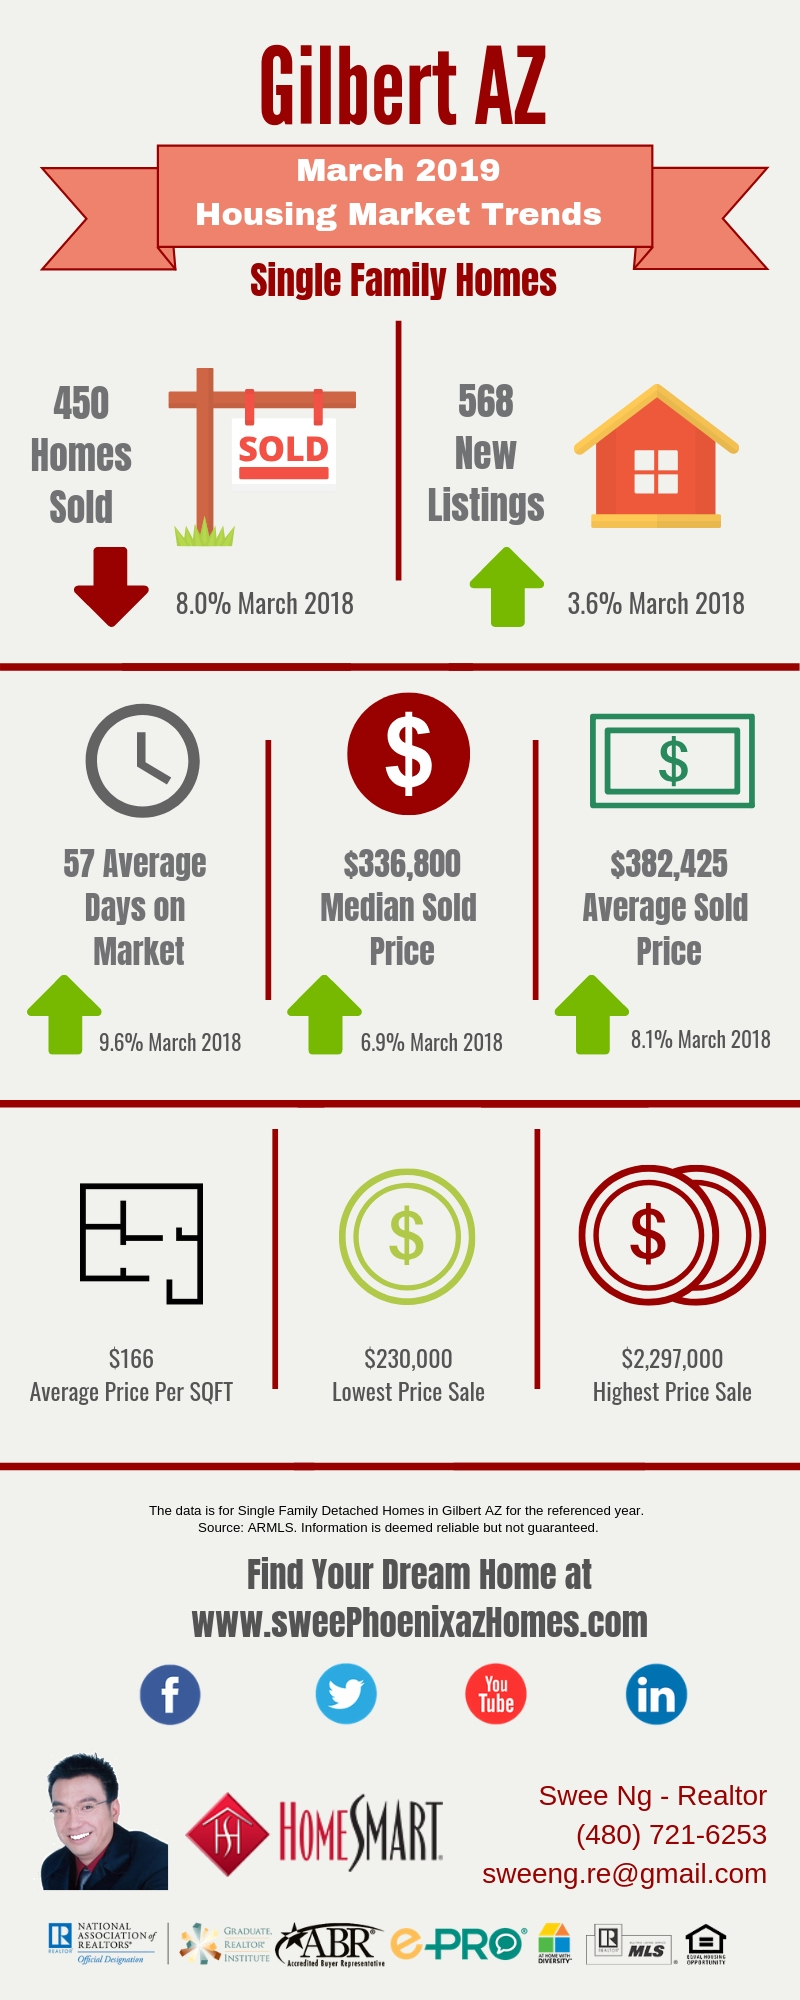 Gilbert AZ Housing Market Trends Report March 2019 by Swee Ng, Real Estate and House Value